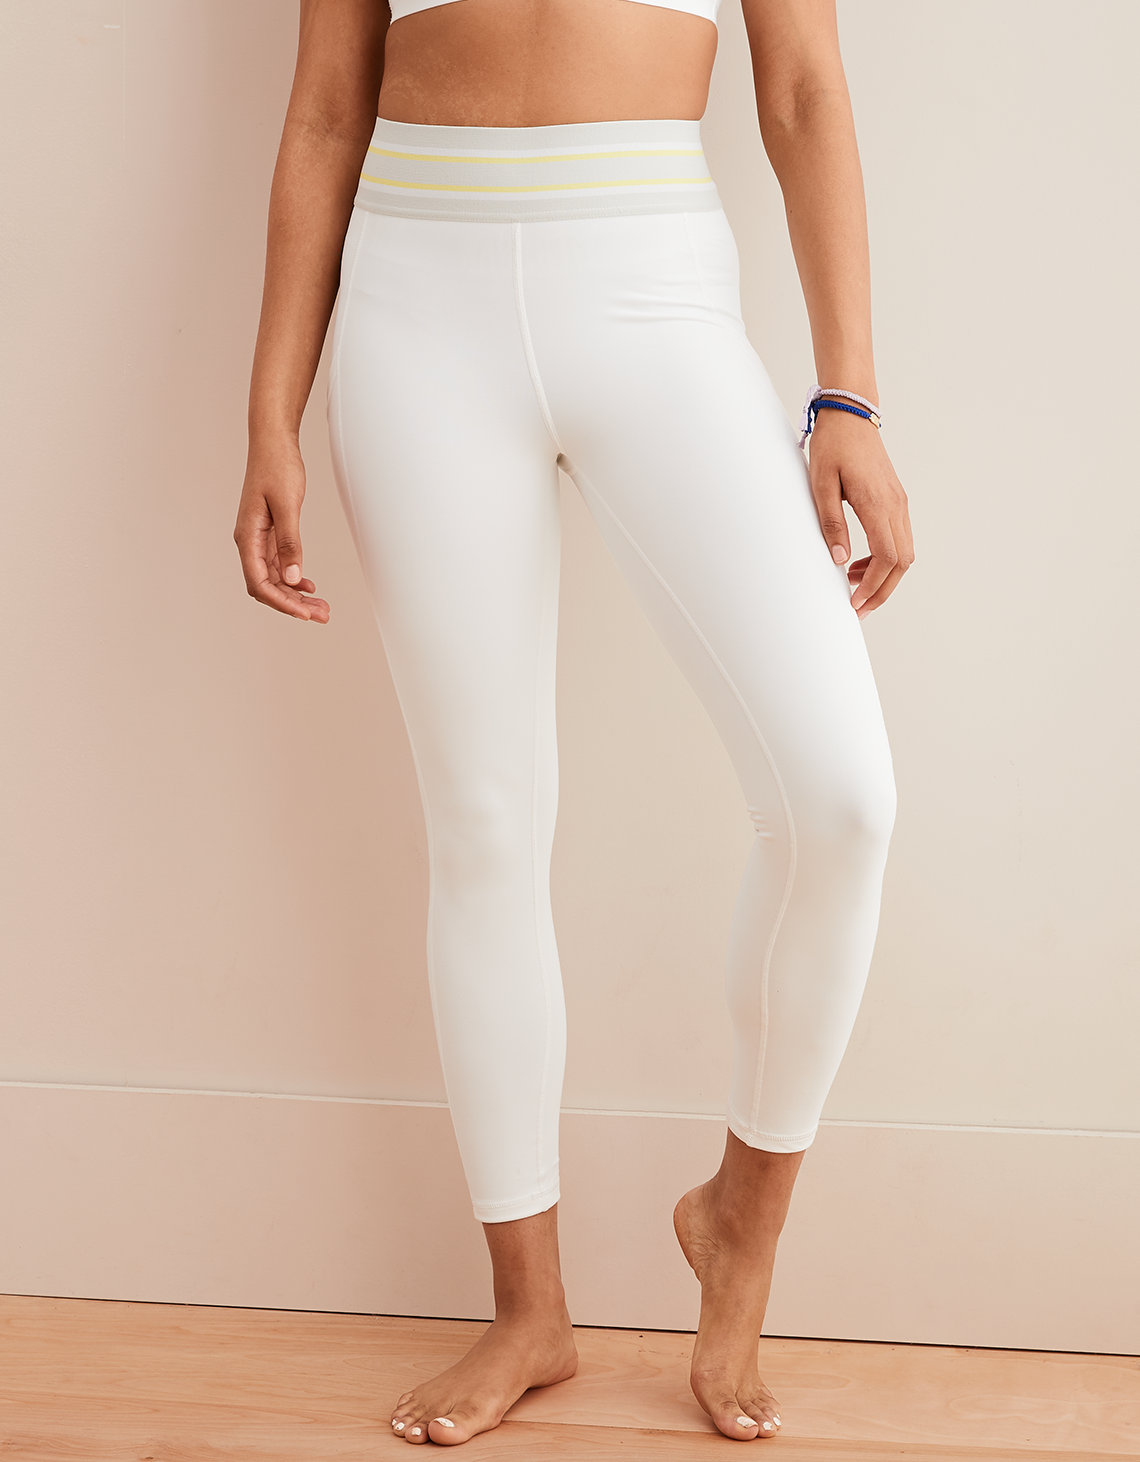 5dbb1503868a6 Aerie Move High Waisted Track 7/8 Legging, White   Aerie for ...